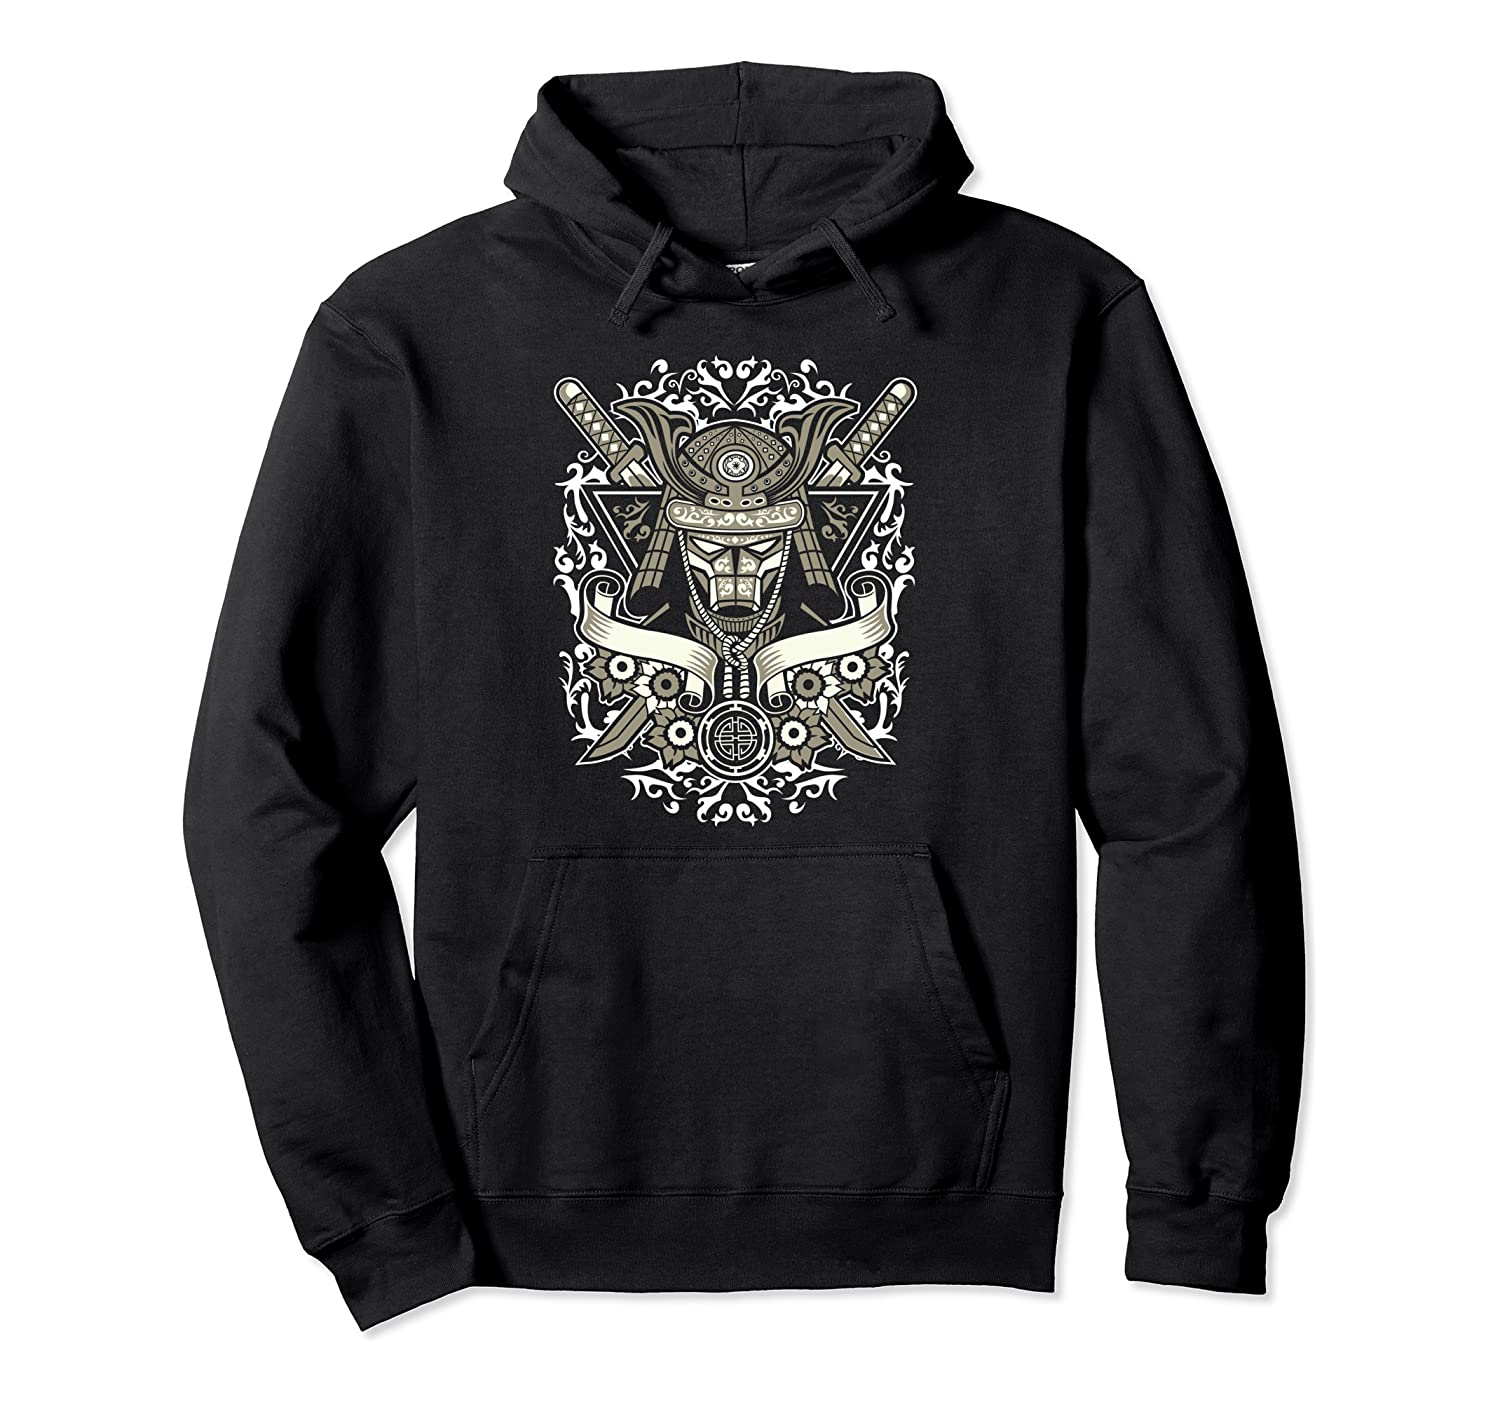 Samurai - Awesome Japanese Retro Pullover Hoodie